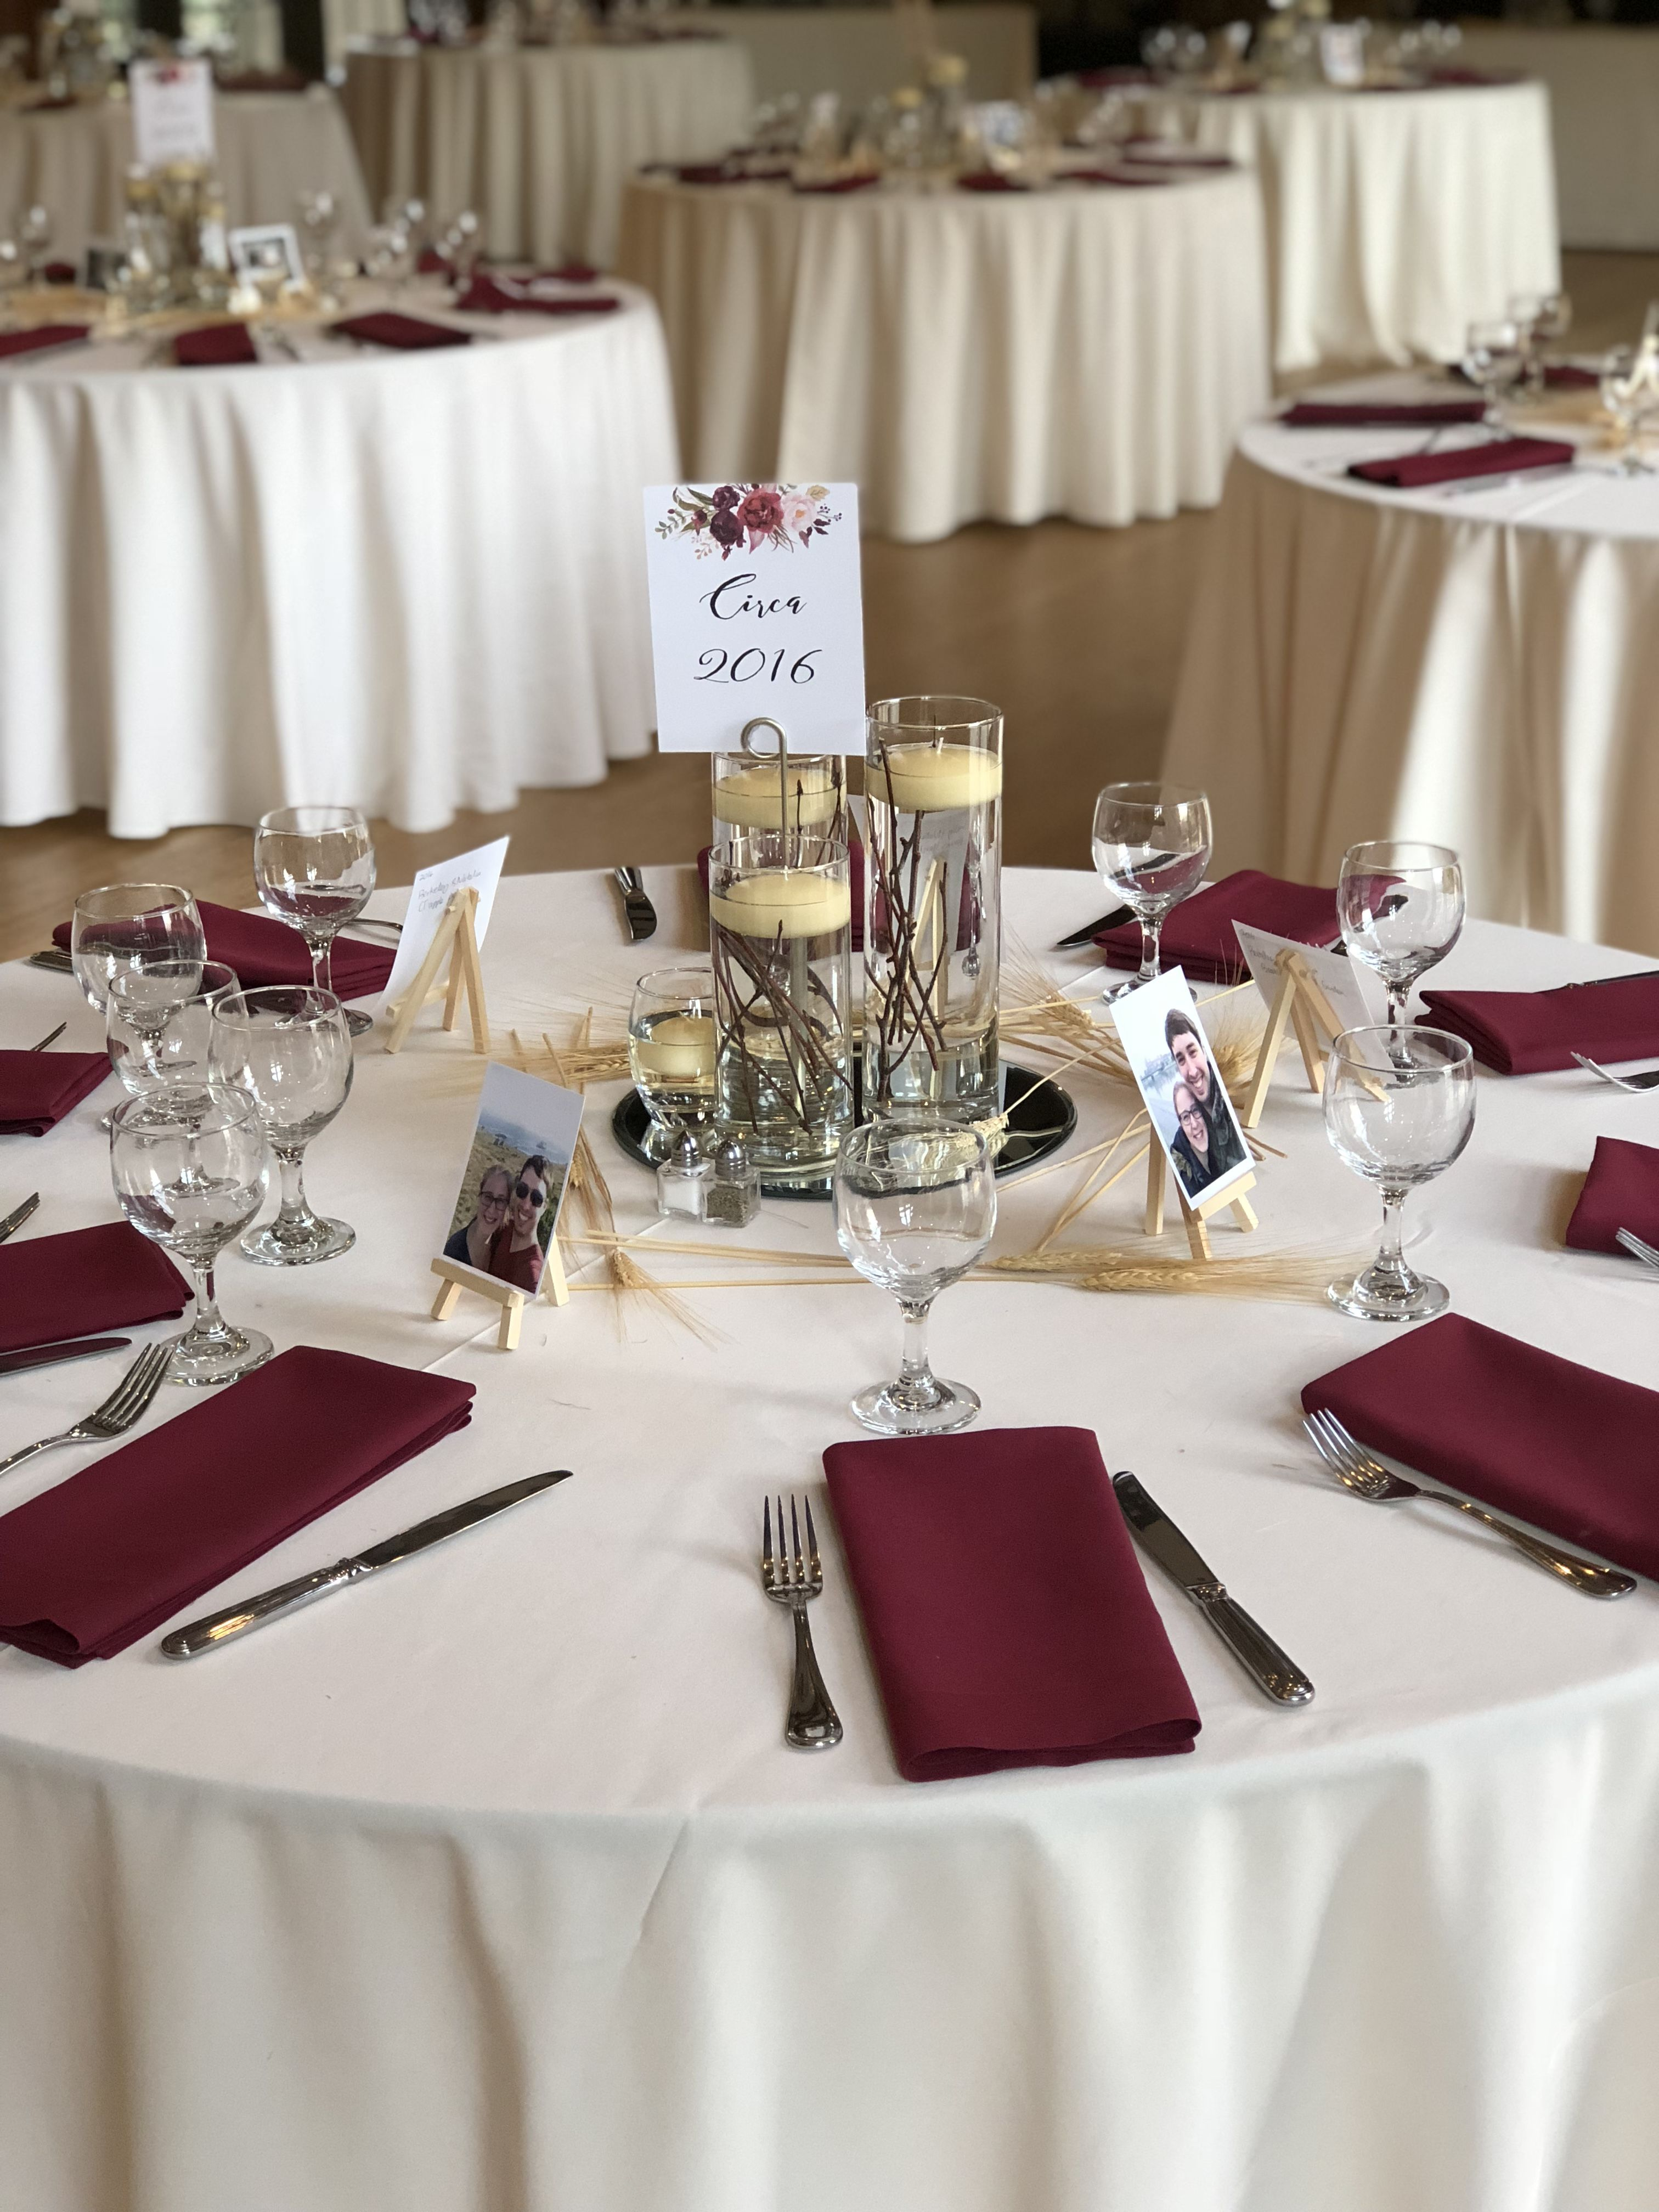 Wedding Table Linens.Ivory Table Linens With Burgundy Napkins Centerpieces And Floral